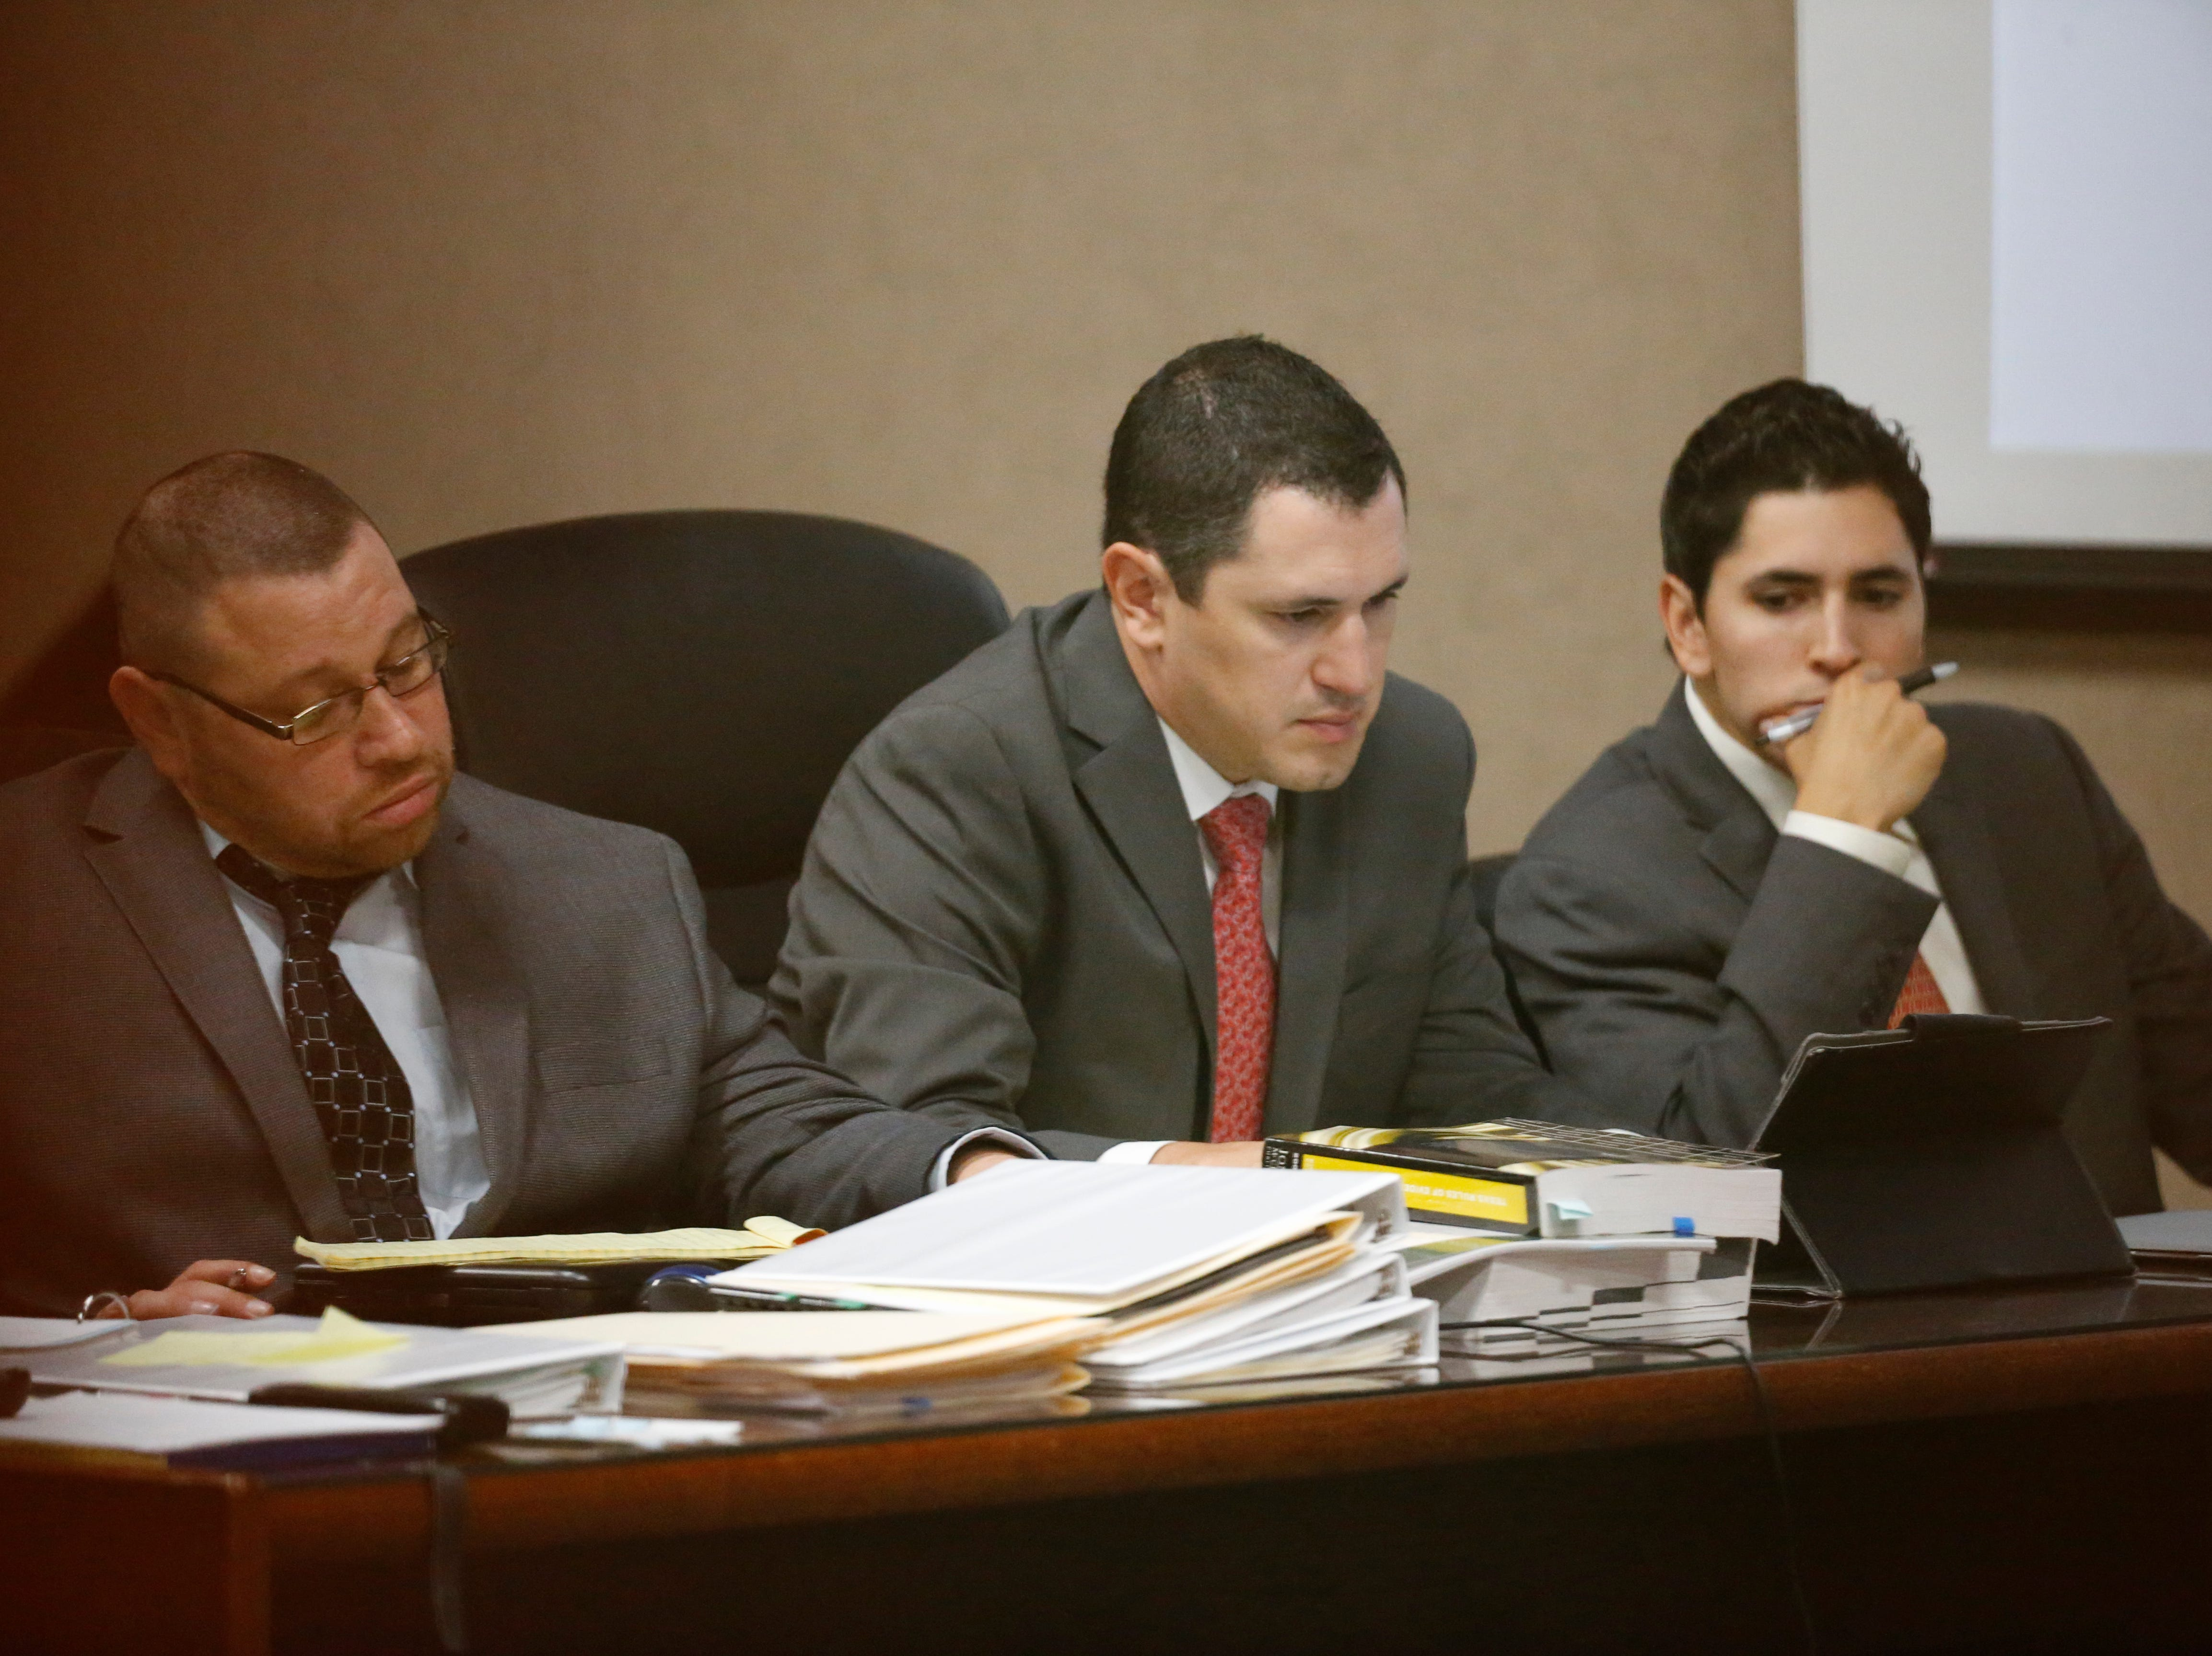 """Daniel Villegas (l) sits with two of his attorneys during opening day testimony in the third trial of El Pasoan Daniel Villegas. Villegas is charged with Capital Murder in connection in the 1993 deaths of Armando """"Mando"""" Lazo and Bobby England. Villegas, who was 16 years old at the time, was allegedly a member of a street gang that shot at four teens, fatally striking Lazo and England on April 10, 1993."""